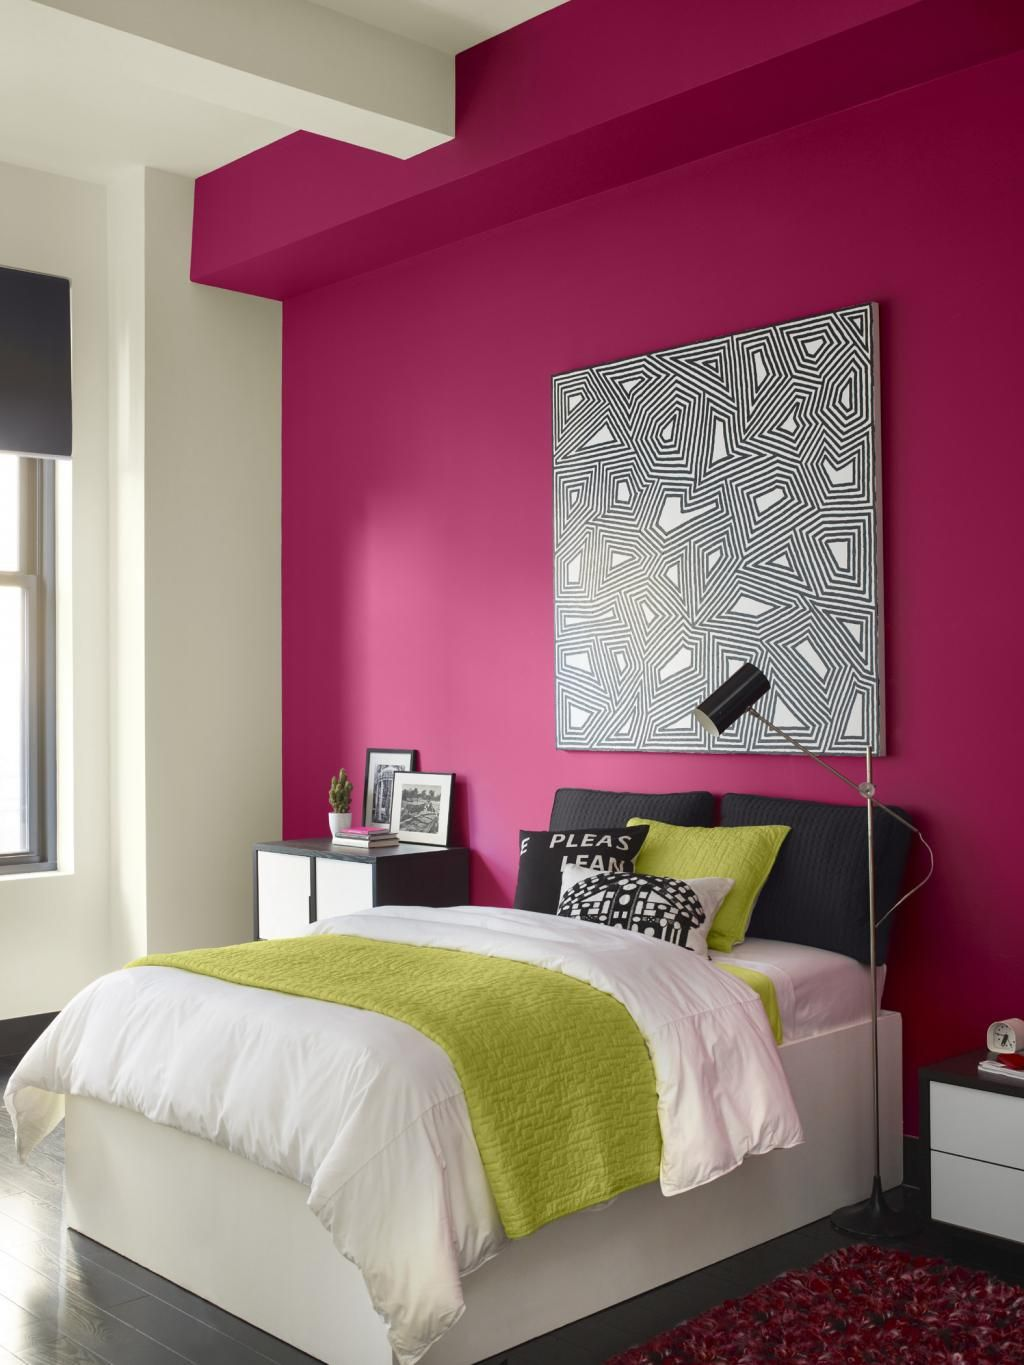 Bedroom wall paint color combinations - Interior Design Teen Bedroom Color Combination With Bright Pink White Color Home Interior Colour Design Combinations Ideas